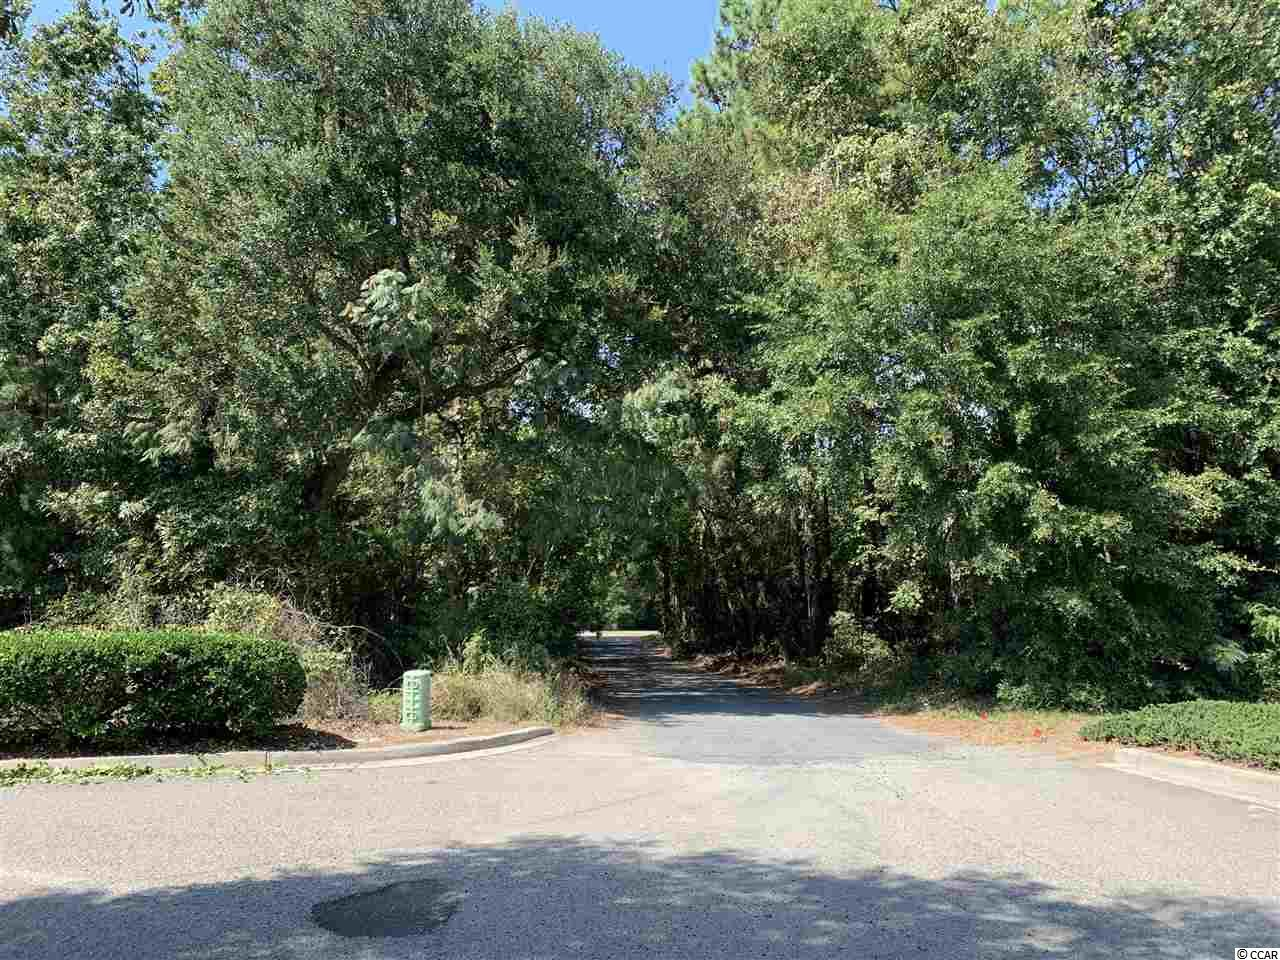 This property is in a very convenient location in the heart of Pawleys Island/Litchfield community. There are 3 other properties available in the same area. Easy access from Hwy 17. Within minutes of Litchfield Beach and Huntington State Park